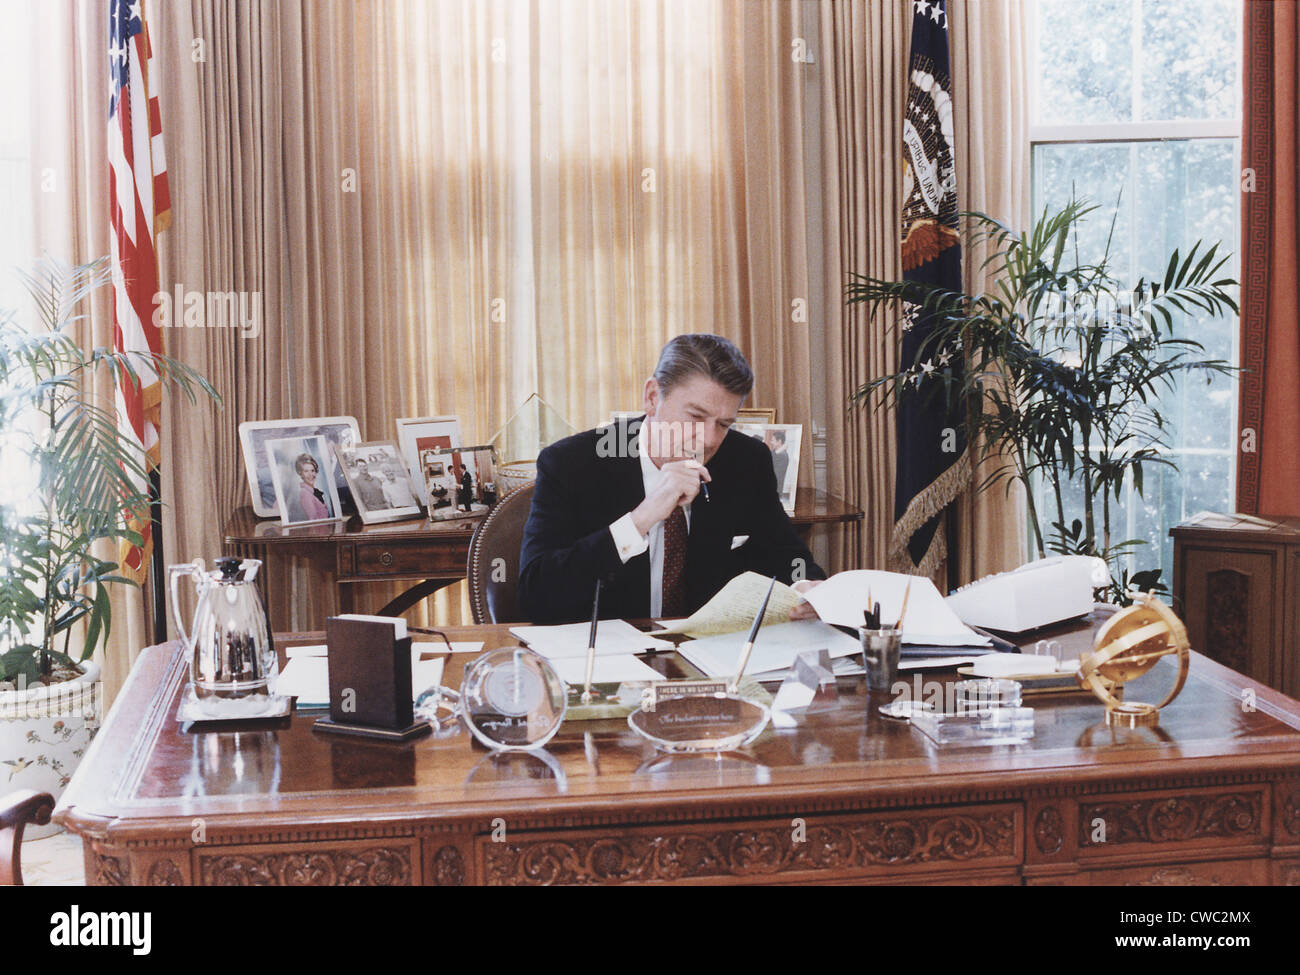 oval office desks. president reagan working at his oval office desk shortly before delivering 1982 state of the union address to congress. jan desks